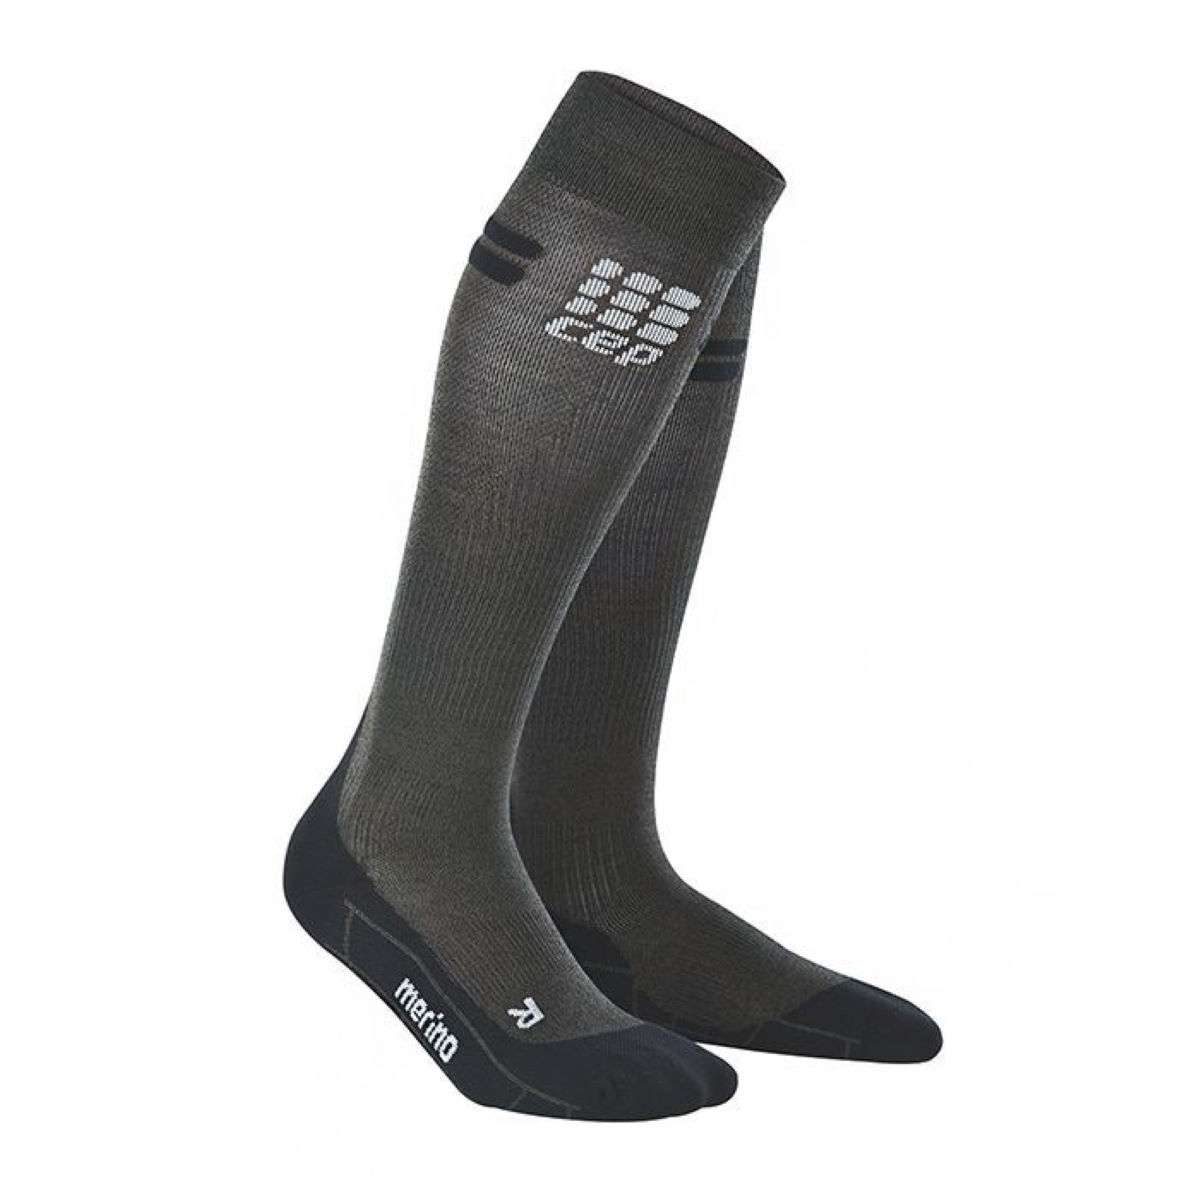 CEP Women's Merino Run Compression Socks - Calcetines de compresión